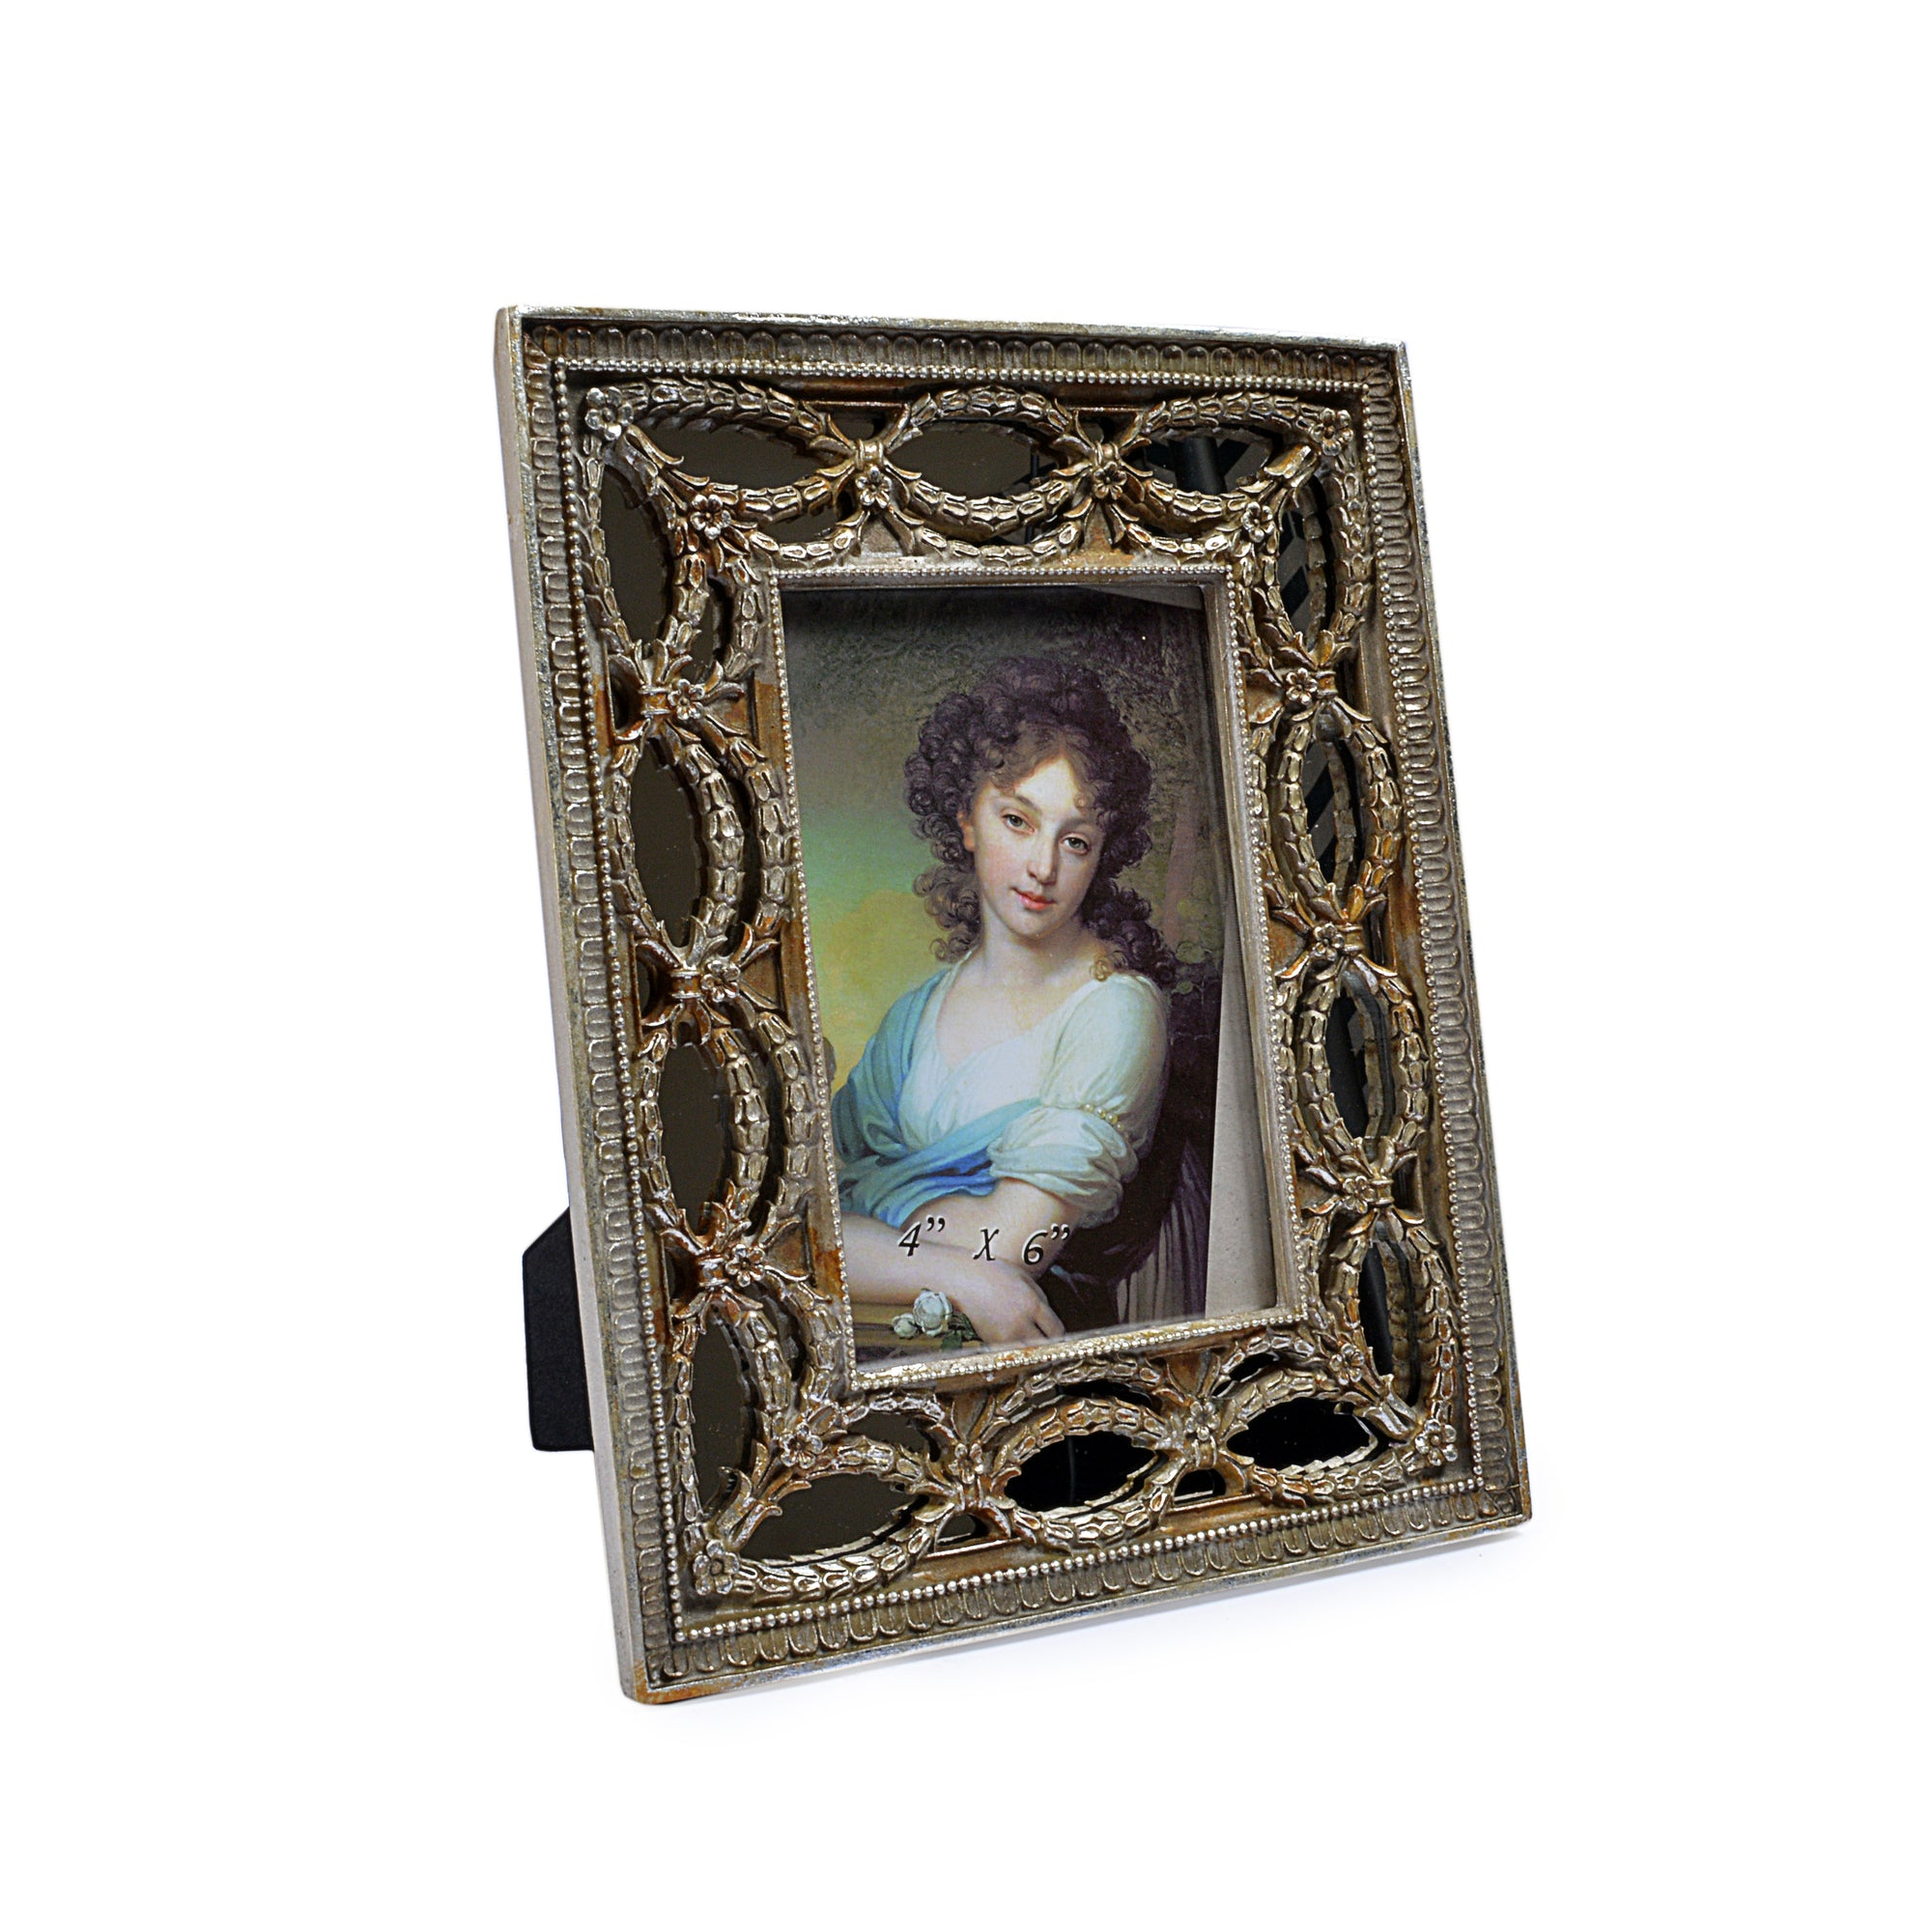 Mirror Effect Royal Wooden Design Photo Frame